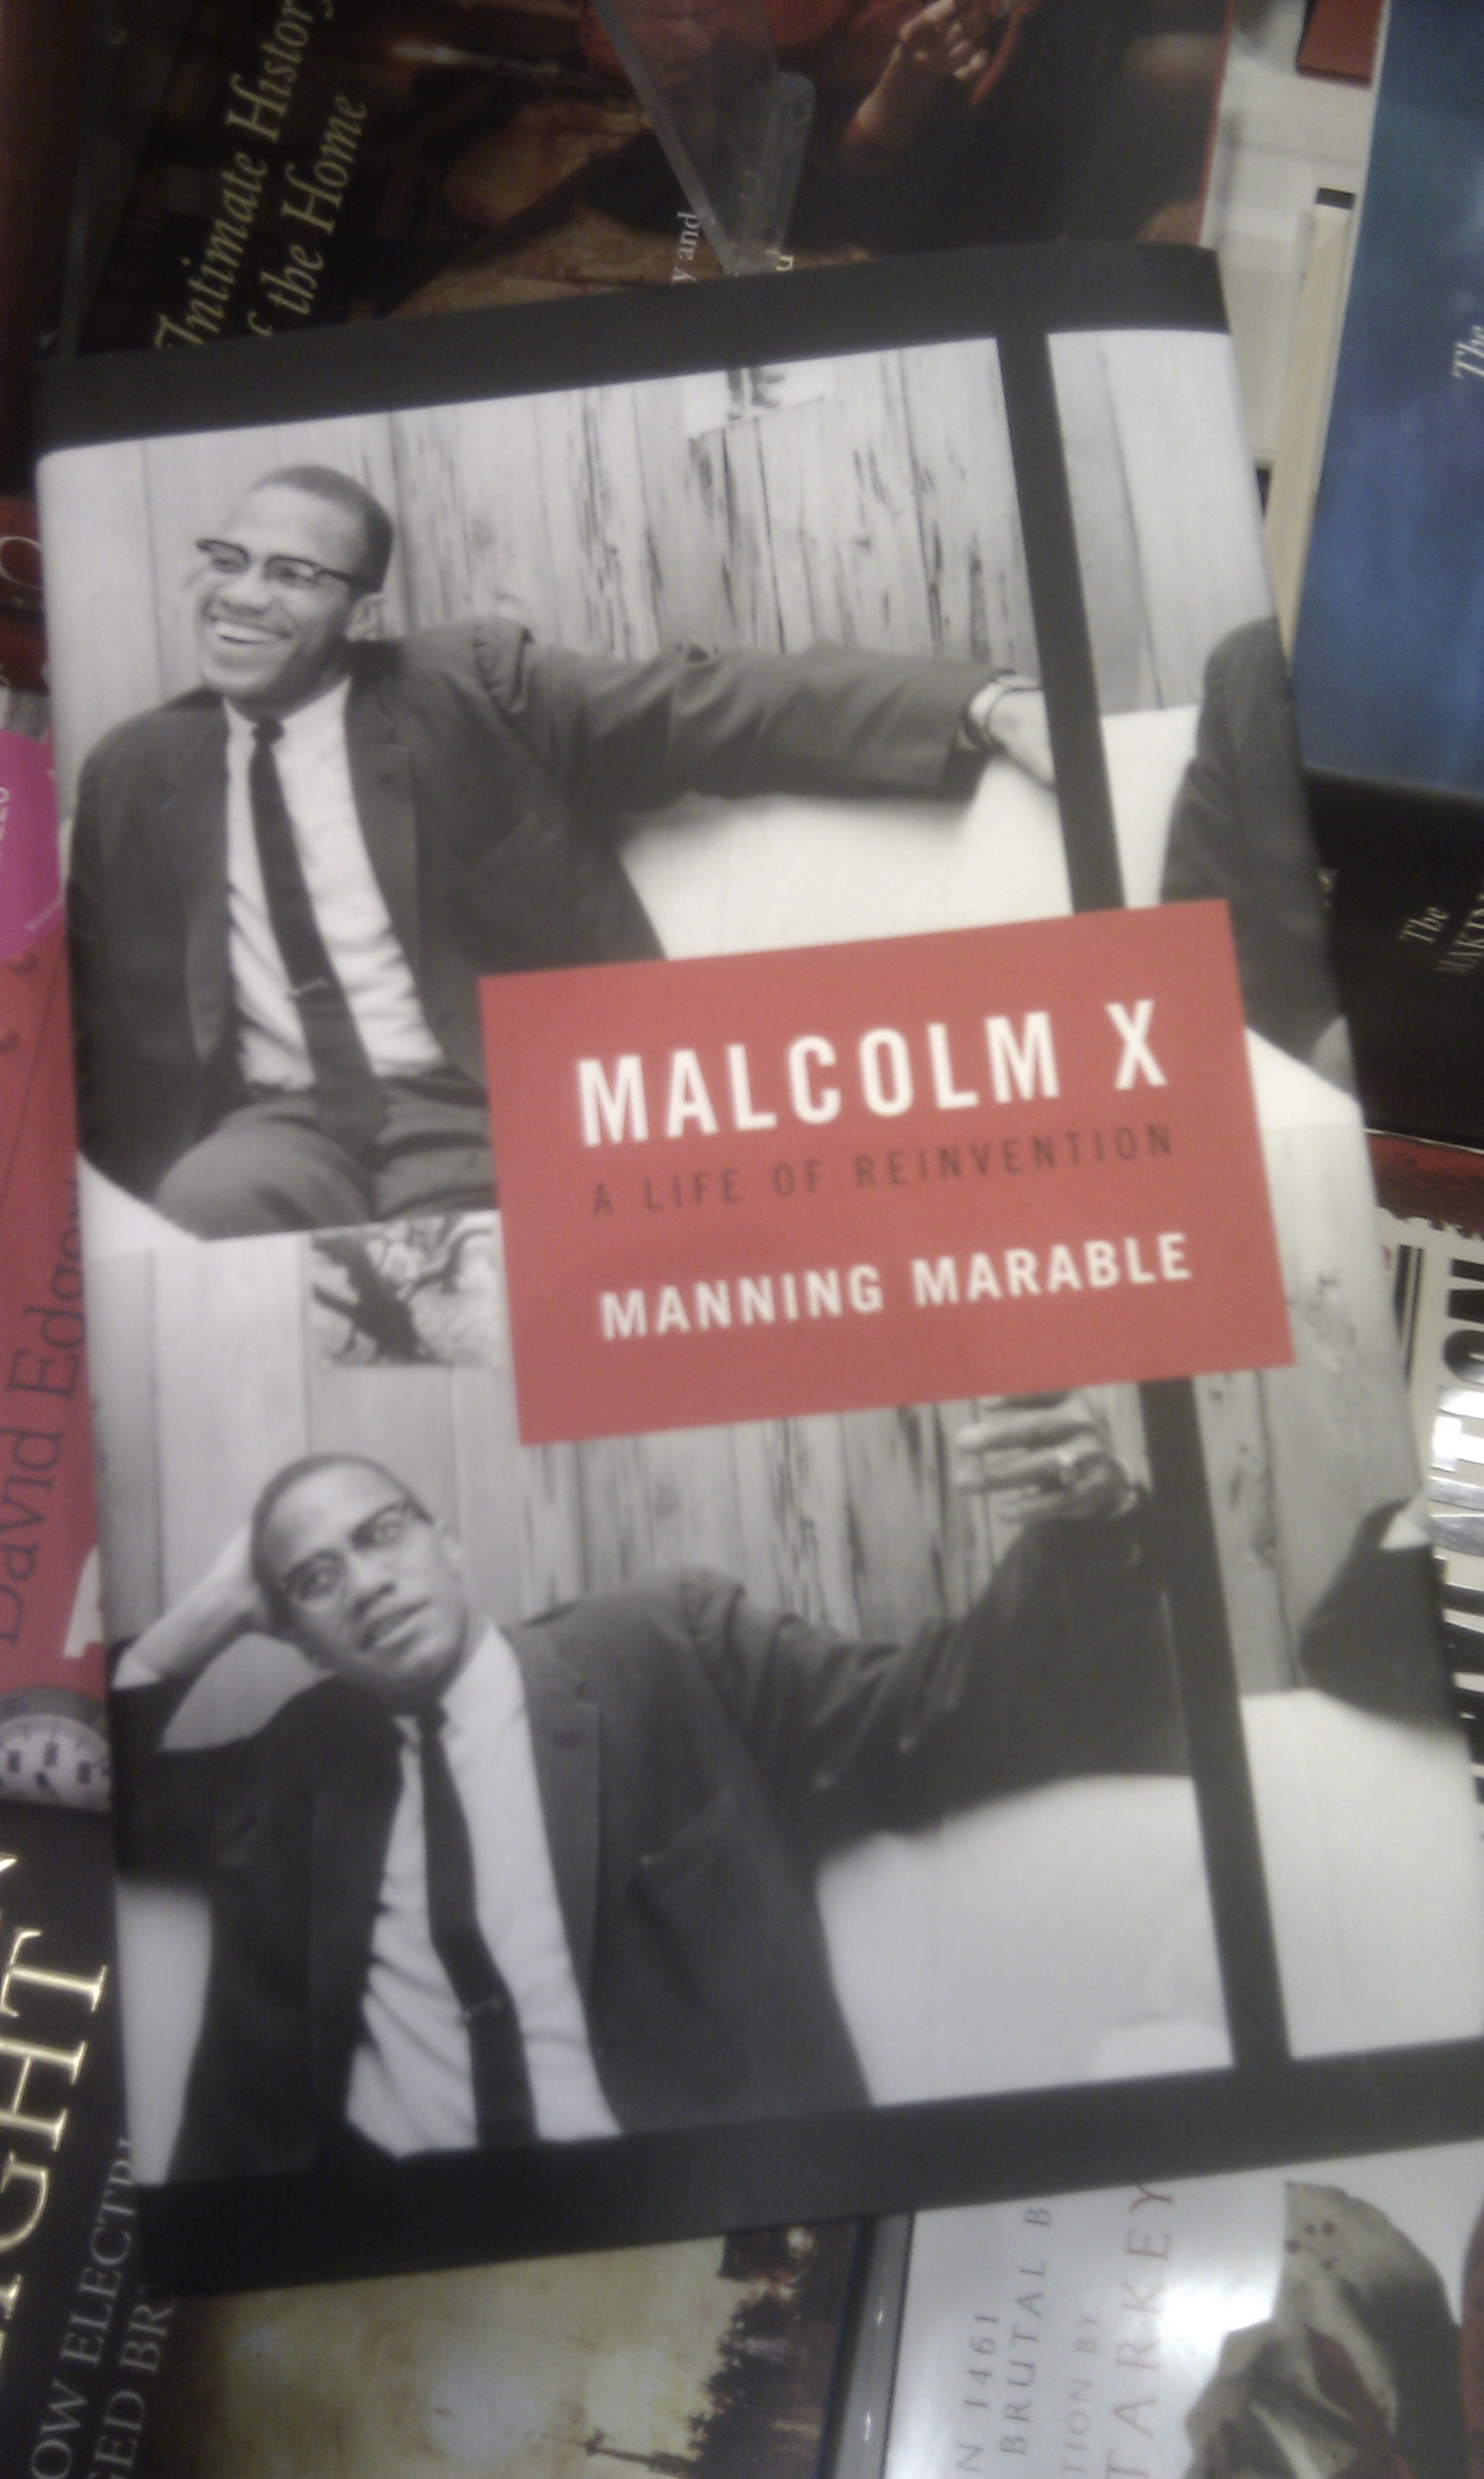 malcolm essay Malcolm x was born malcolm little on 19 may 1925, the fourth of eight children the family lived in omaha in nebraska where his father, a baptist minister, earl little, was a prominent member of the local branch of the universal negro improvement association and an ardent supporter of marcus garvey.